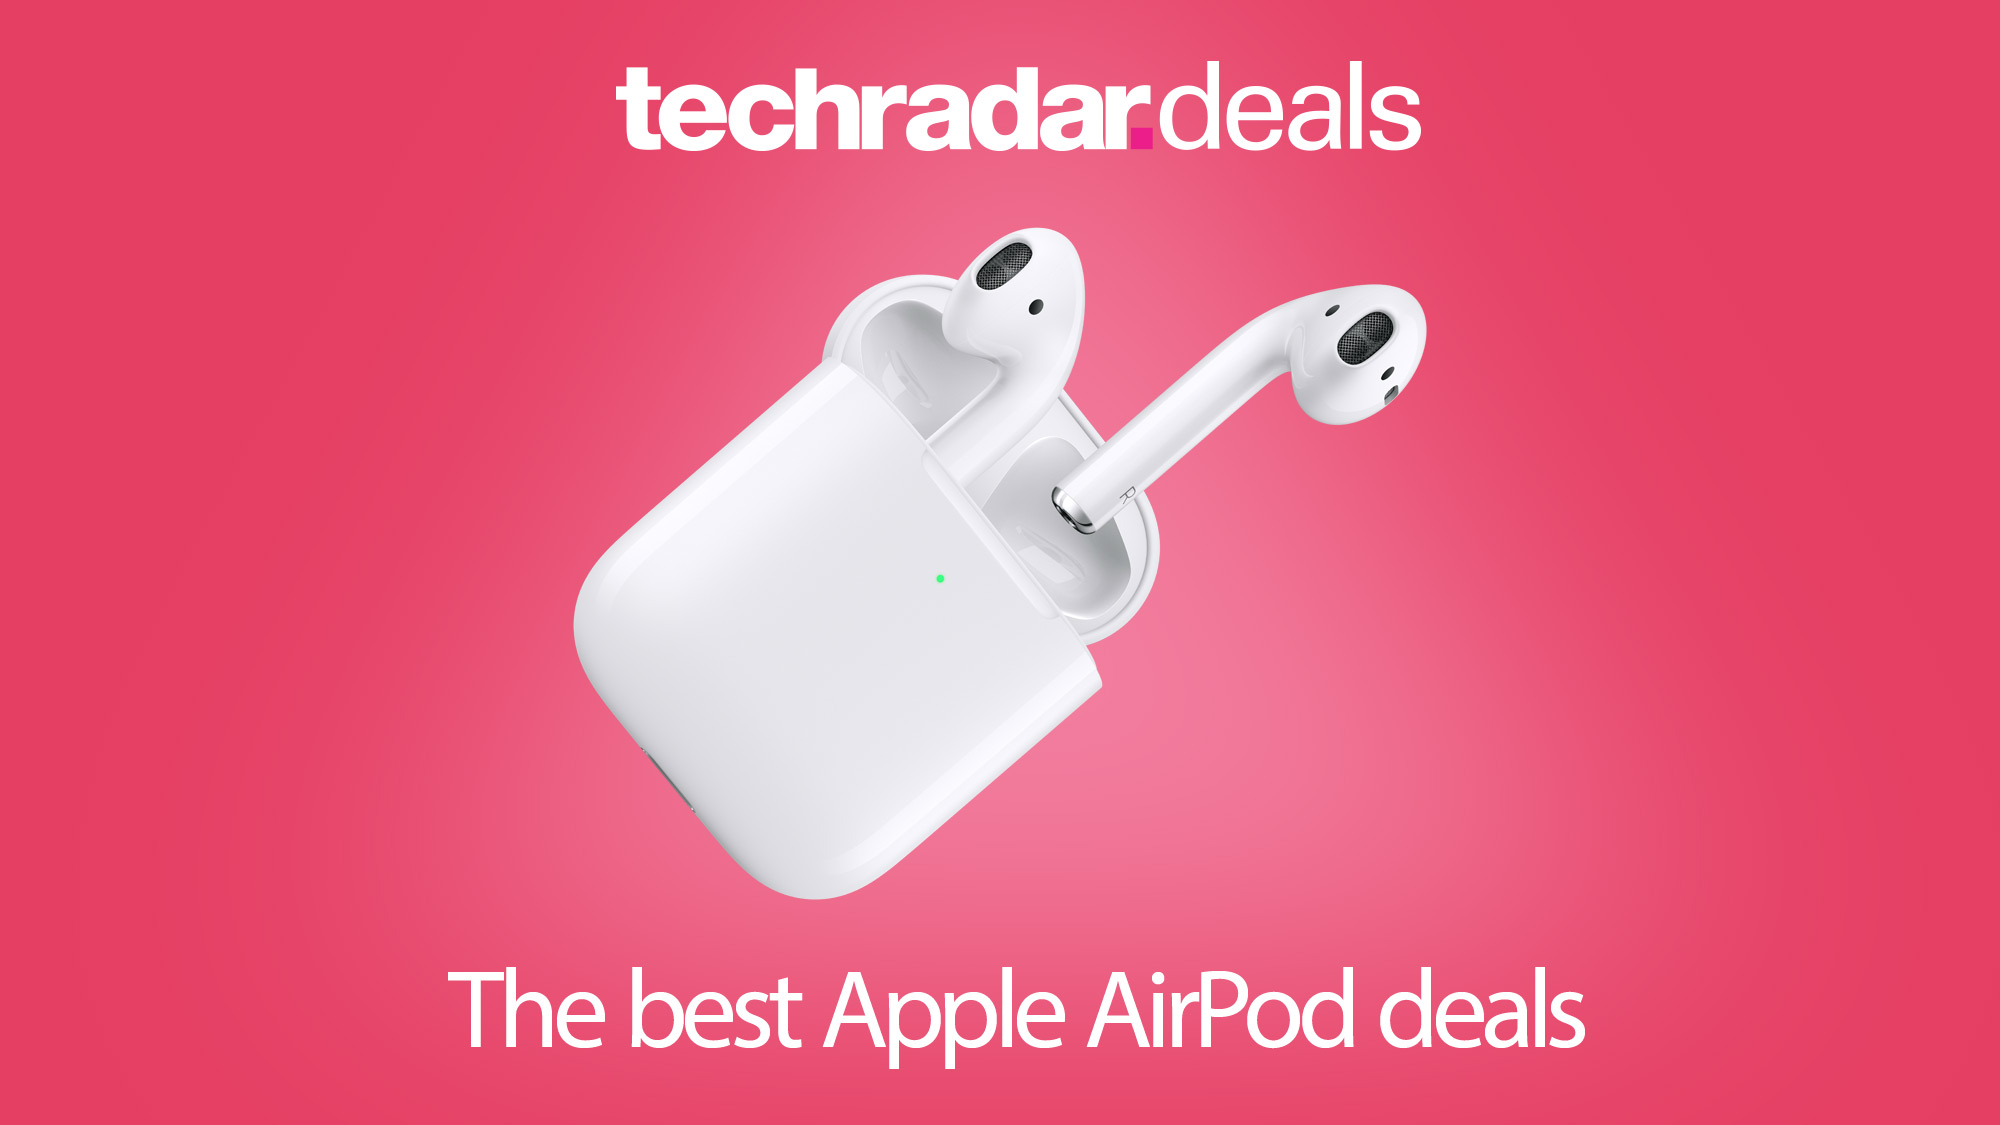 The Cheapest Airpod Prices Sales And Deals In September 2020 Techradar